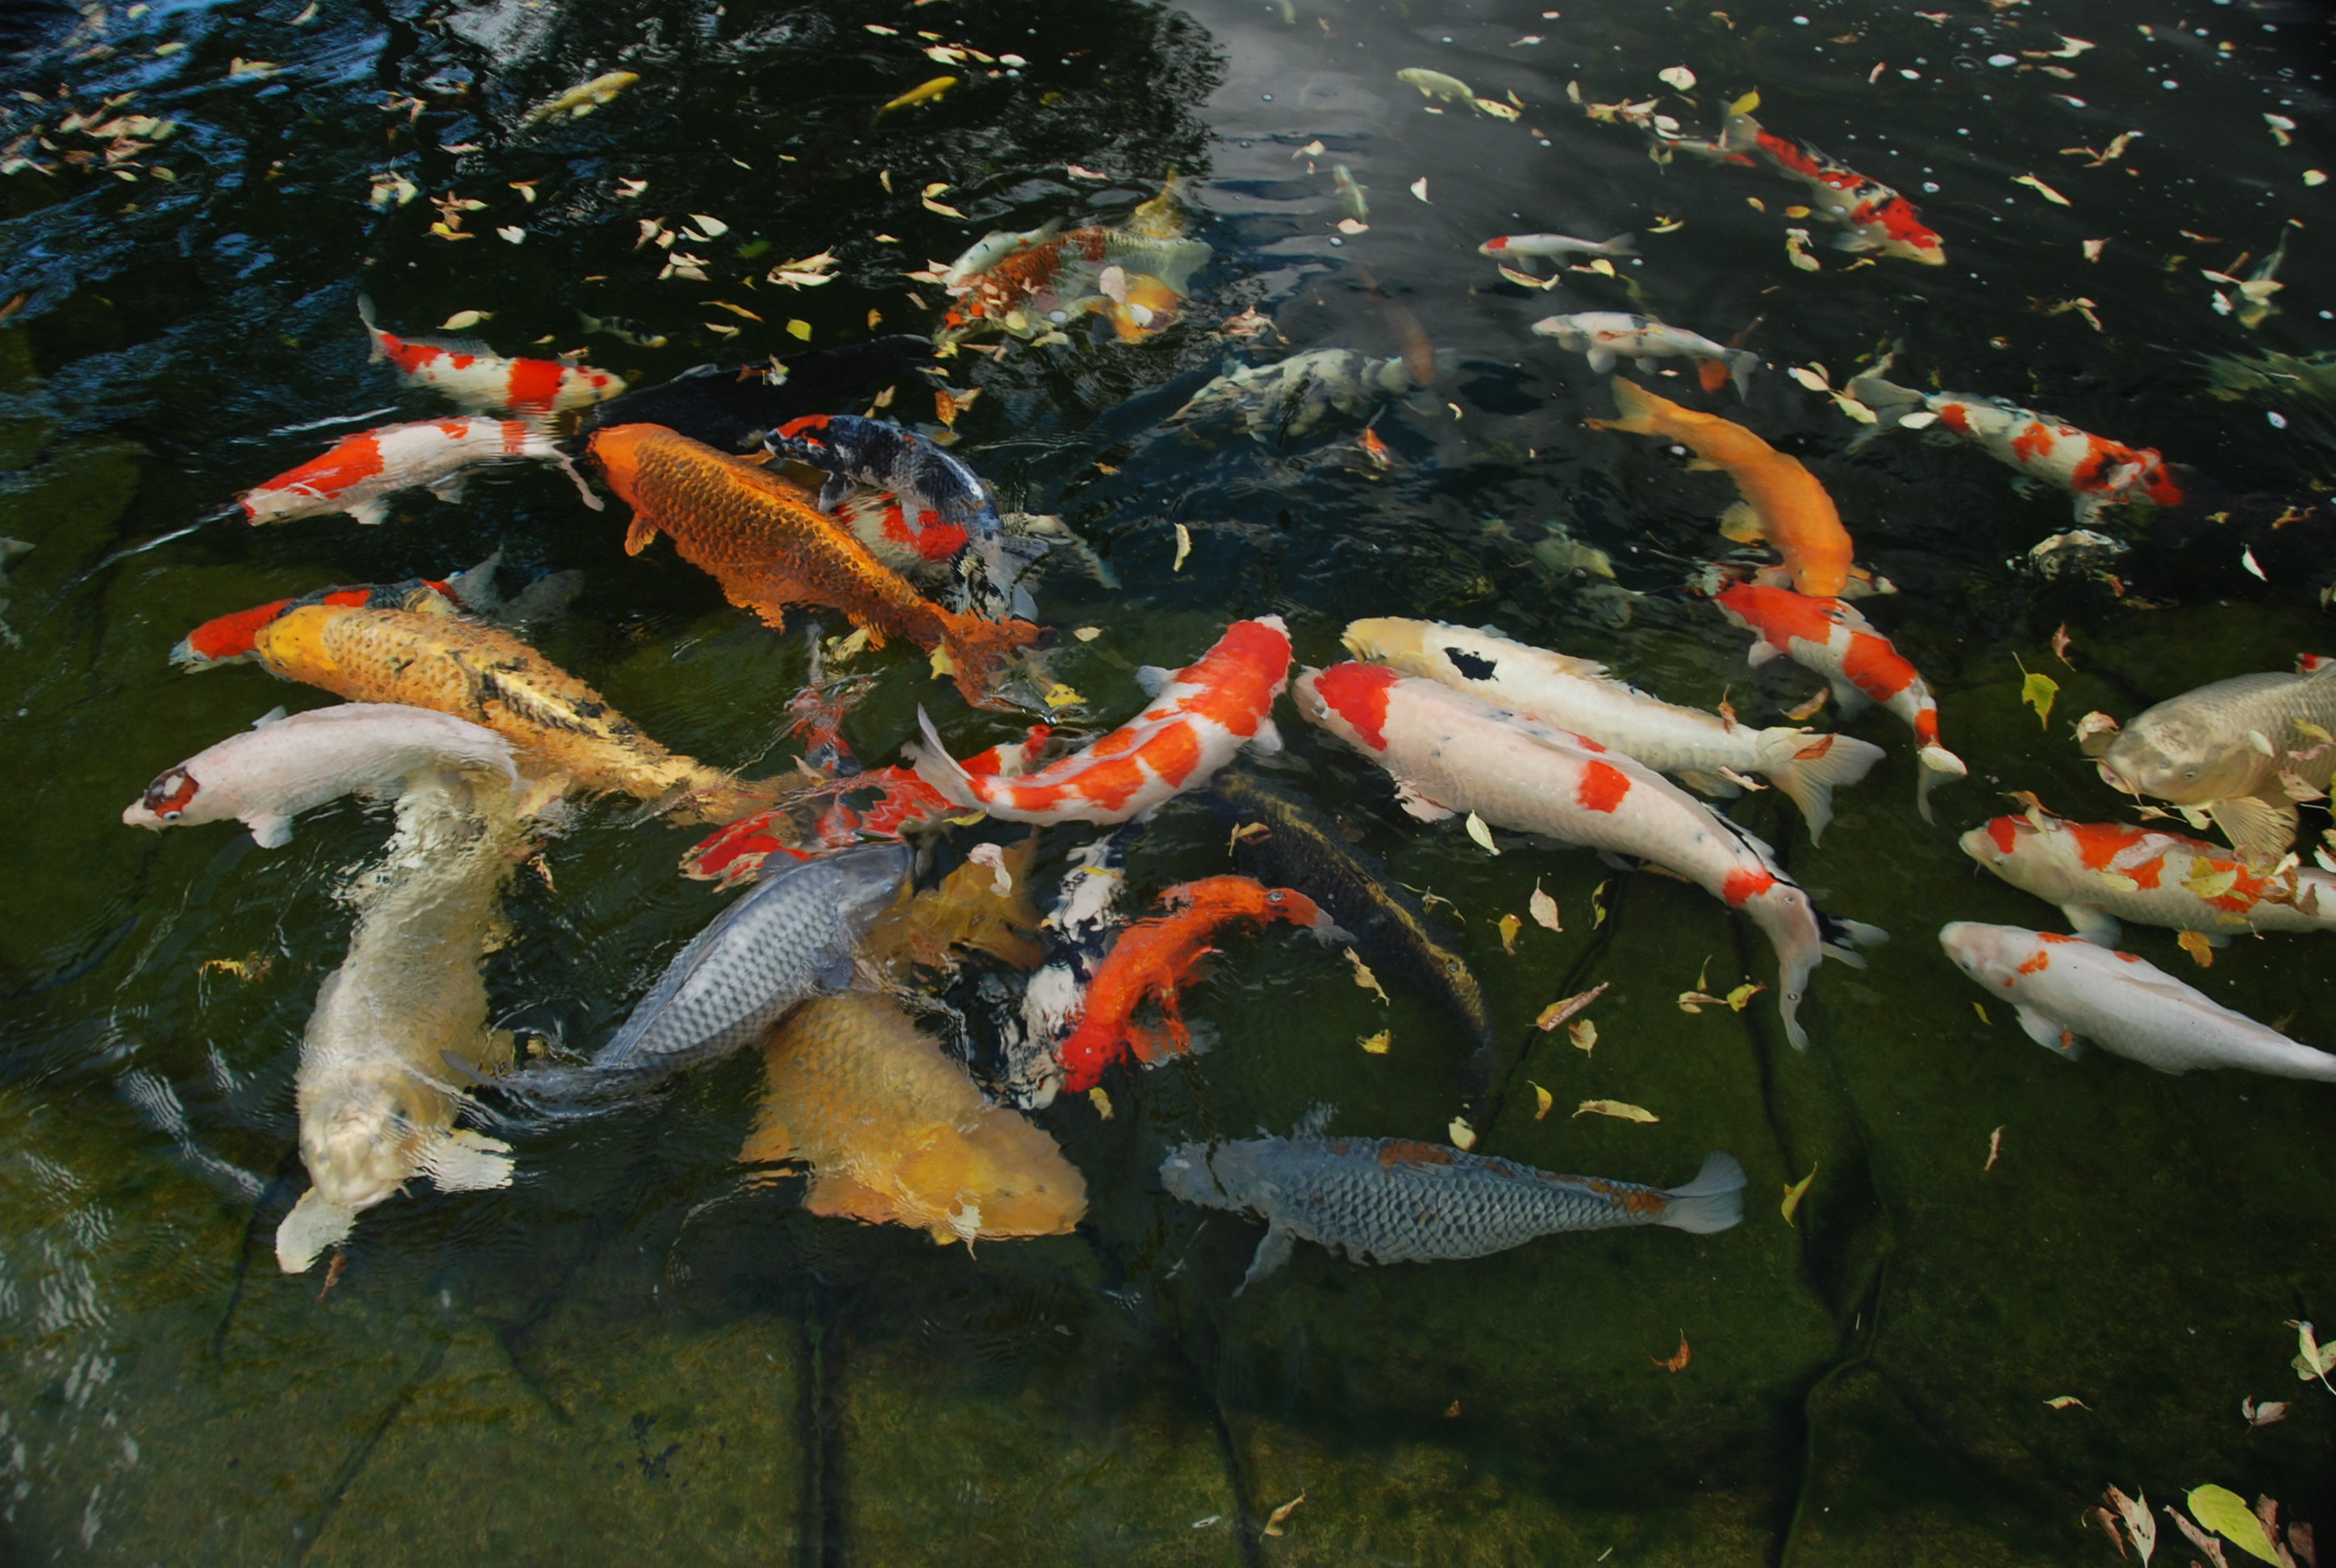 Koi acres imported japanese koi online shopping for koi for Pics of koi fish